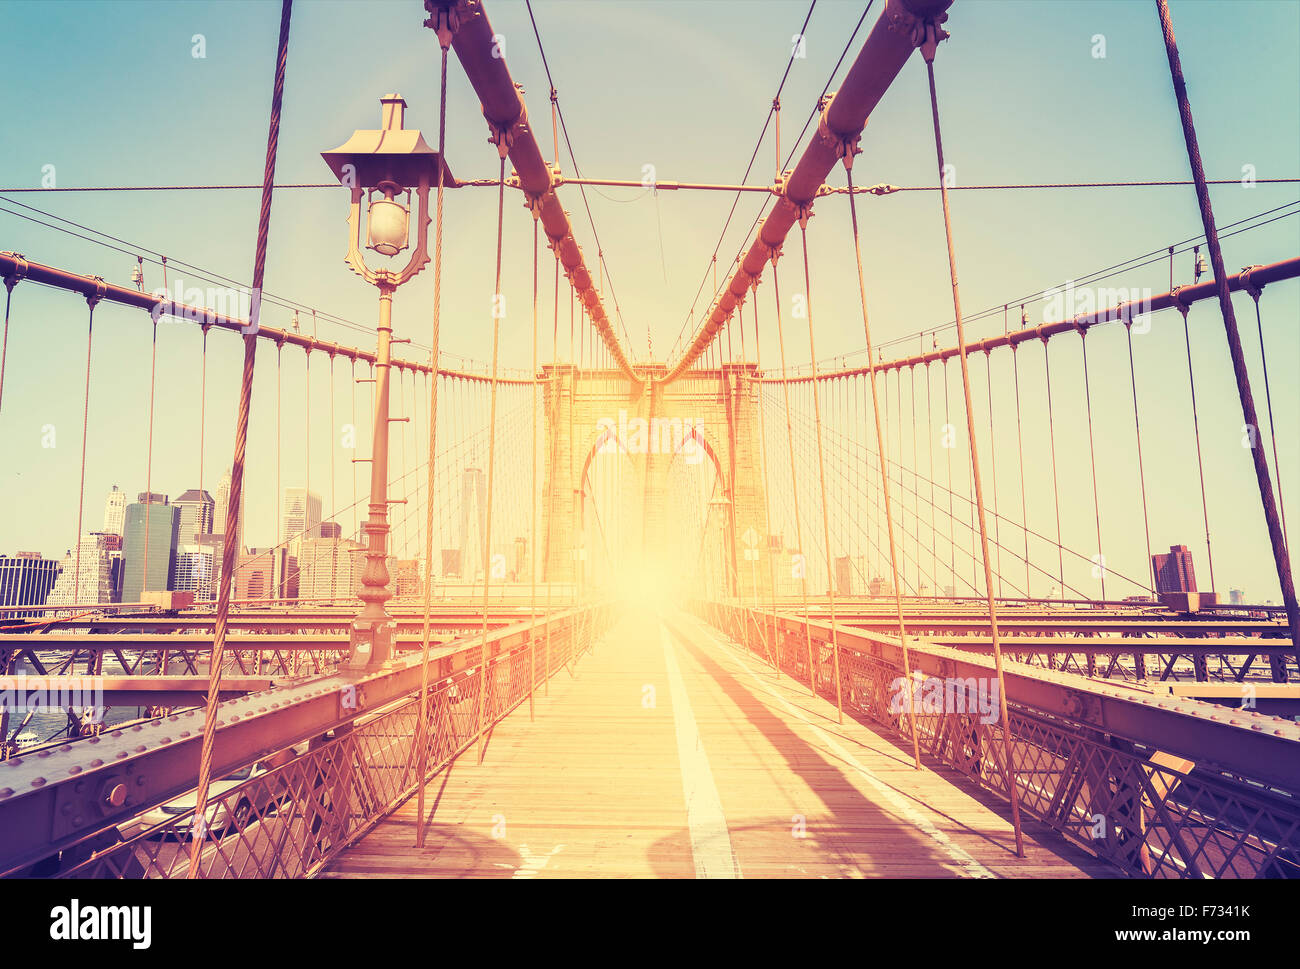 Vintage immagine stilizzata del Ponte di Brooklyn a New York City, Stati Uniti d'America. Immagini Stock